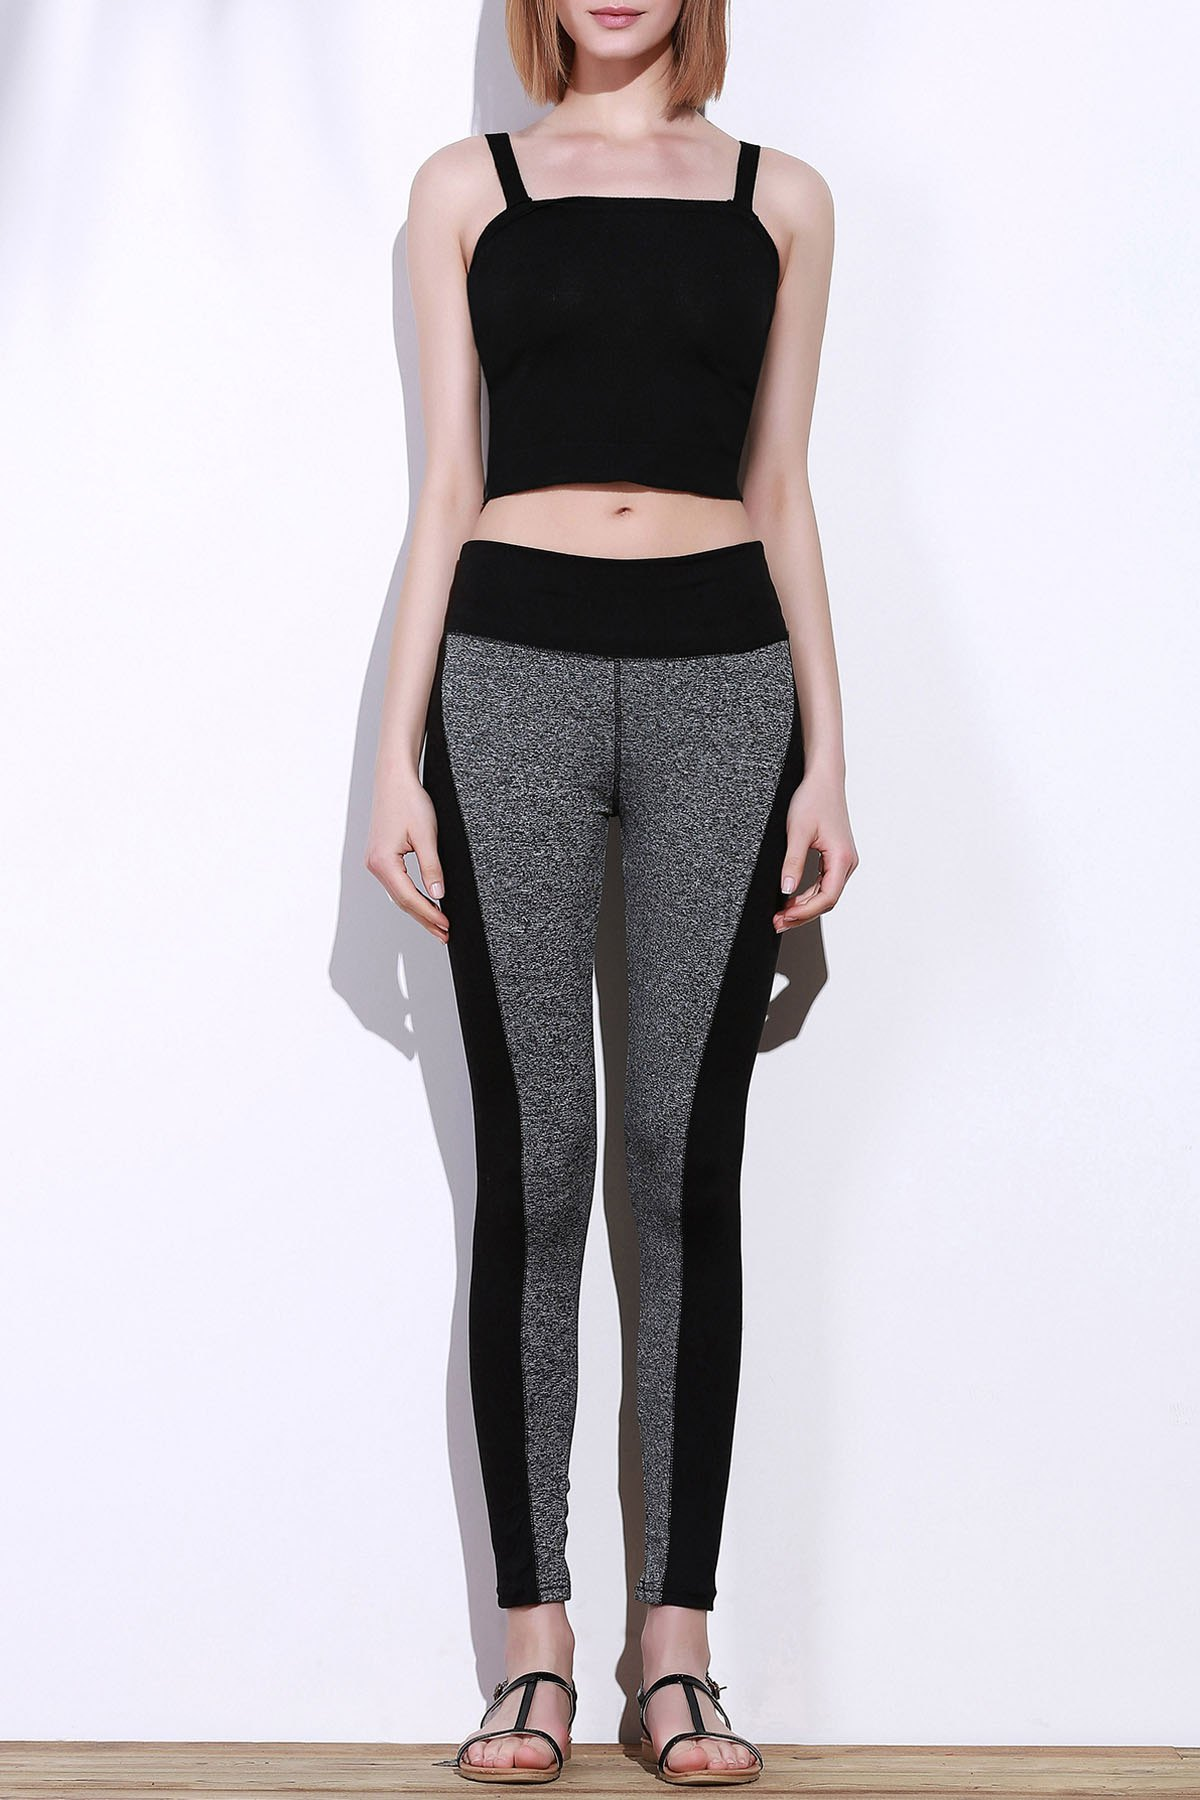 Active Stretchy Skinny Black and Gray Spliced Women's Pants - BLACK/GREY L